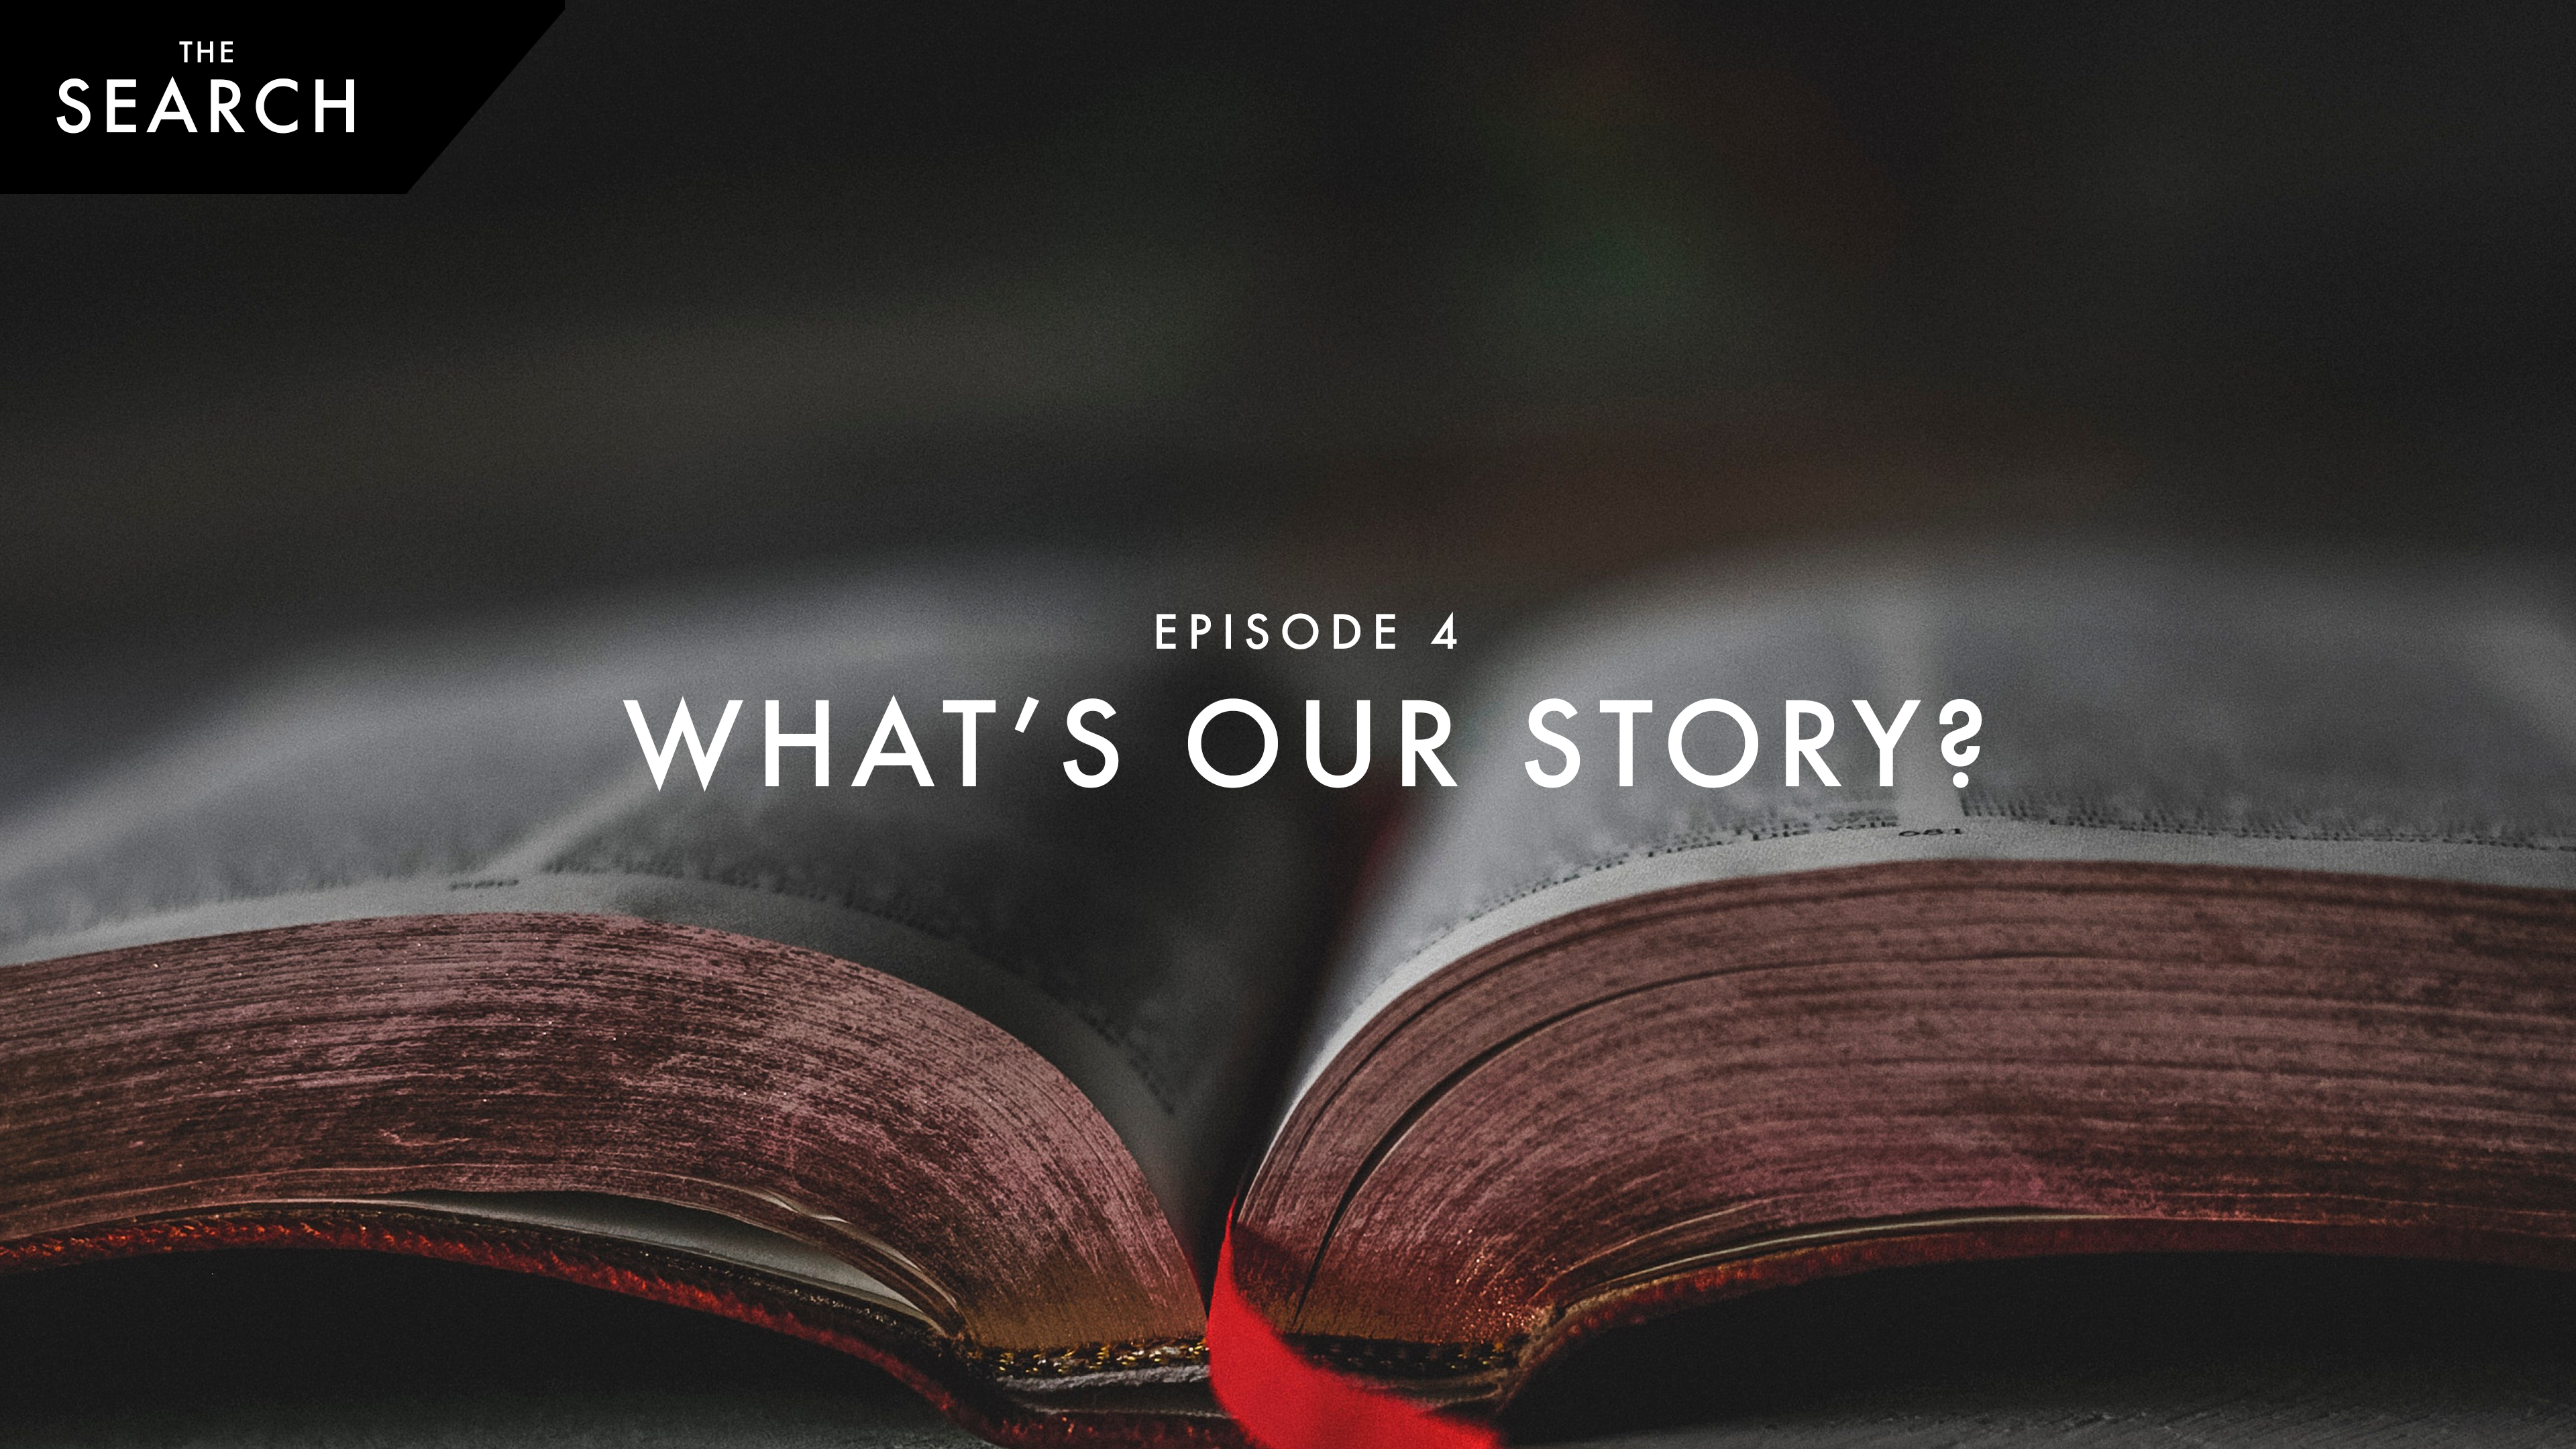 Episode 4: What's Our Story?